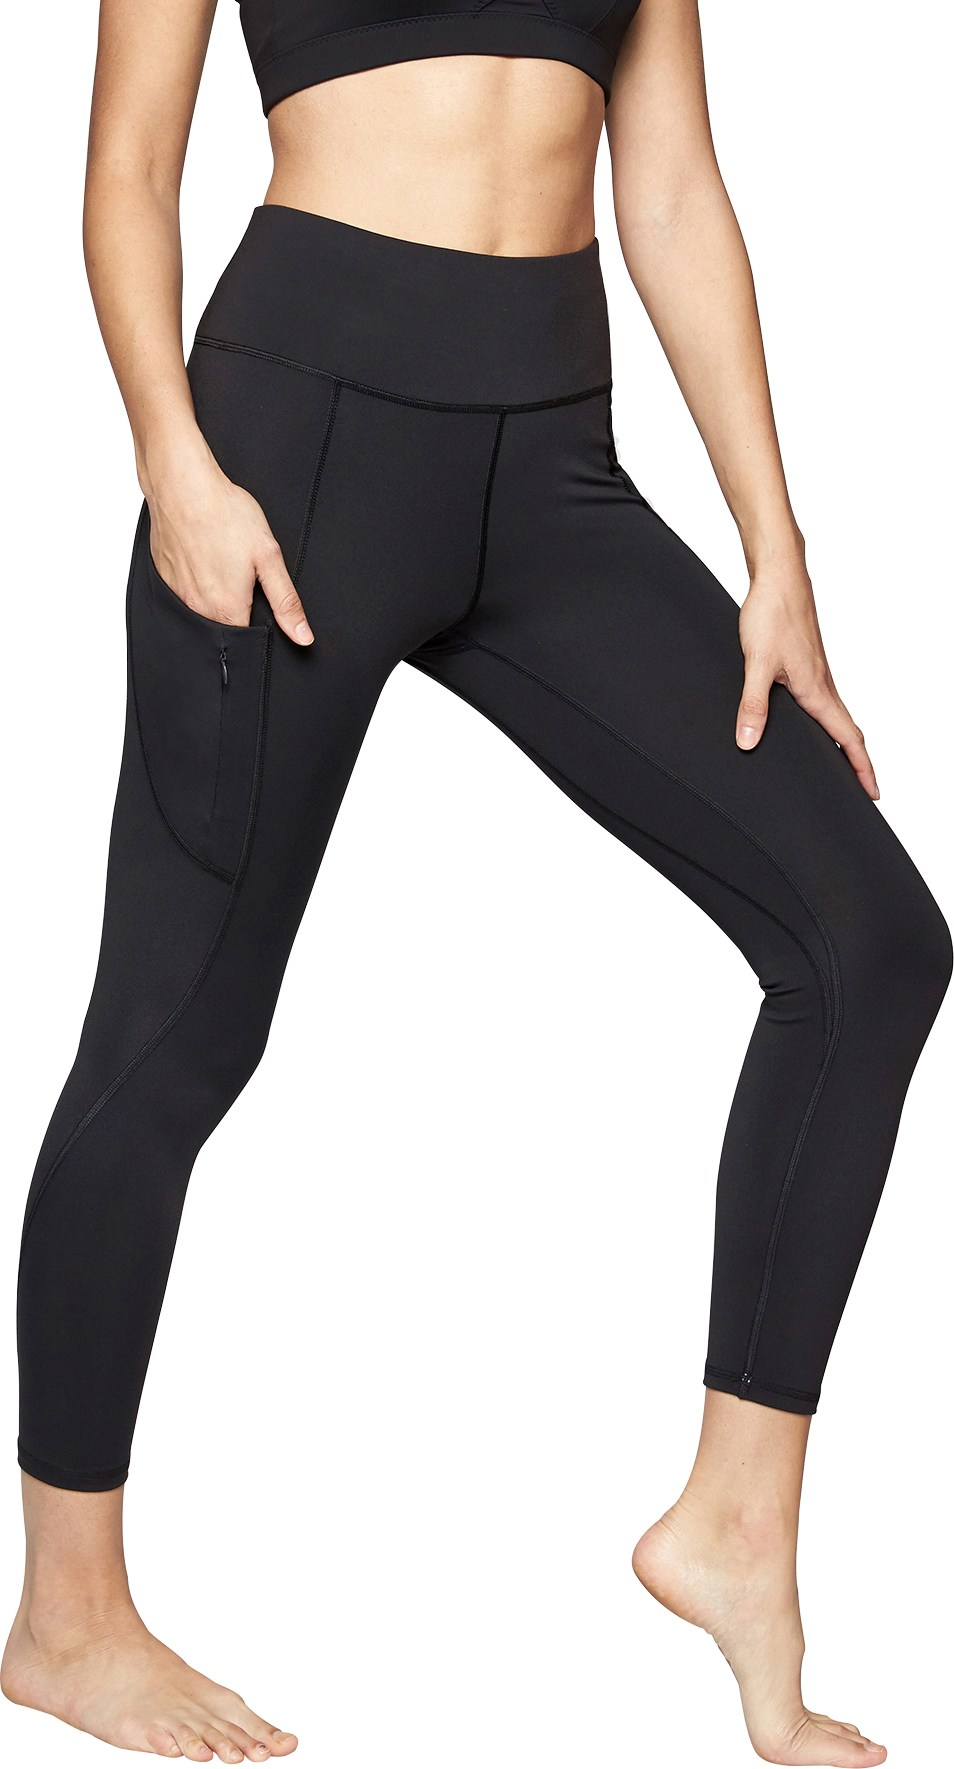 Athleta All In 7/8 Tights - Women's